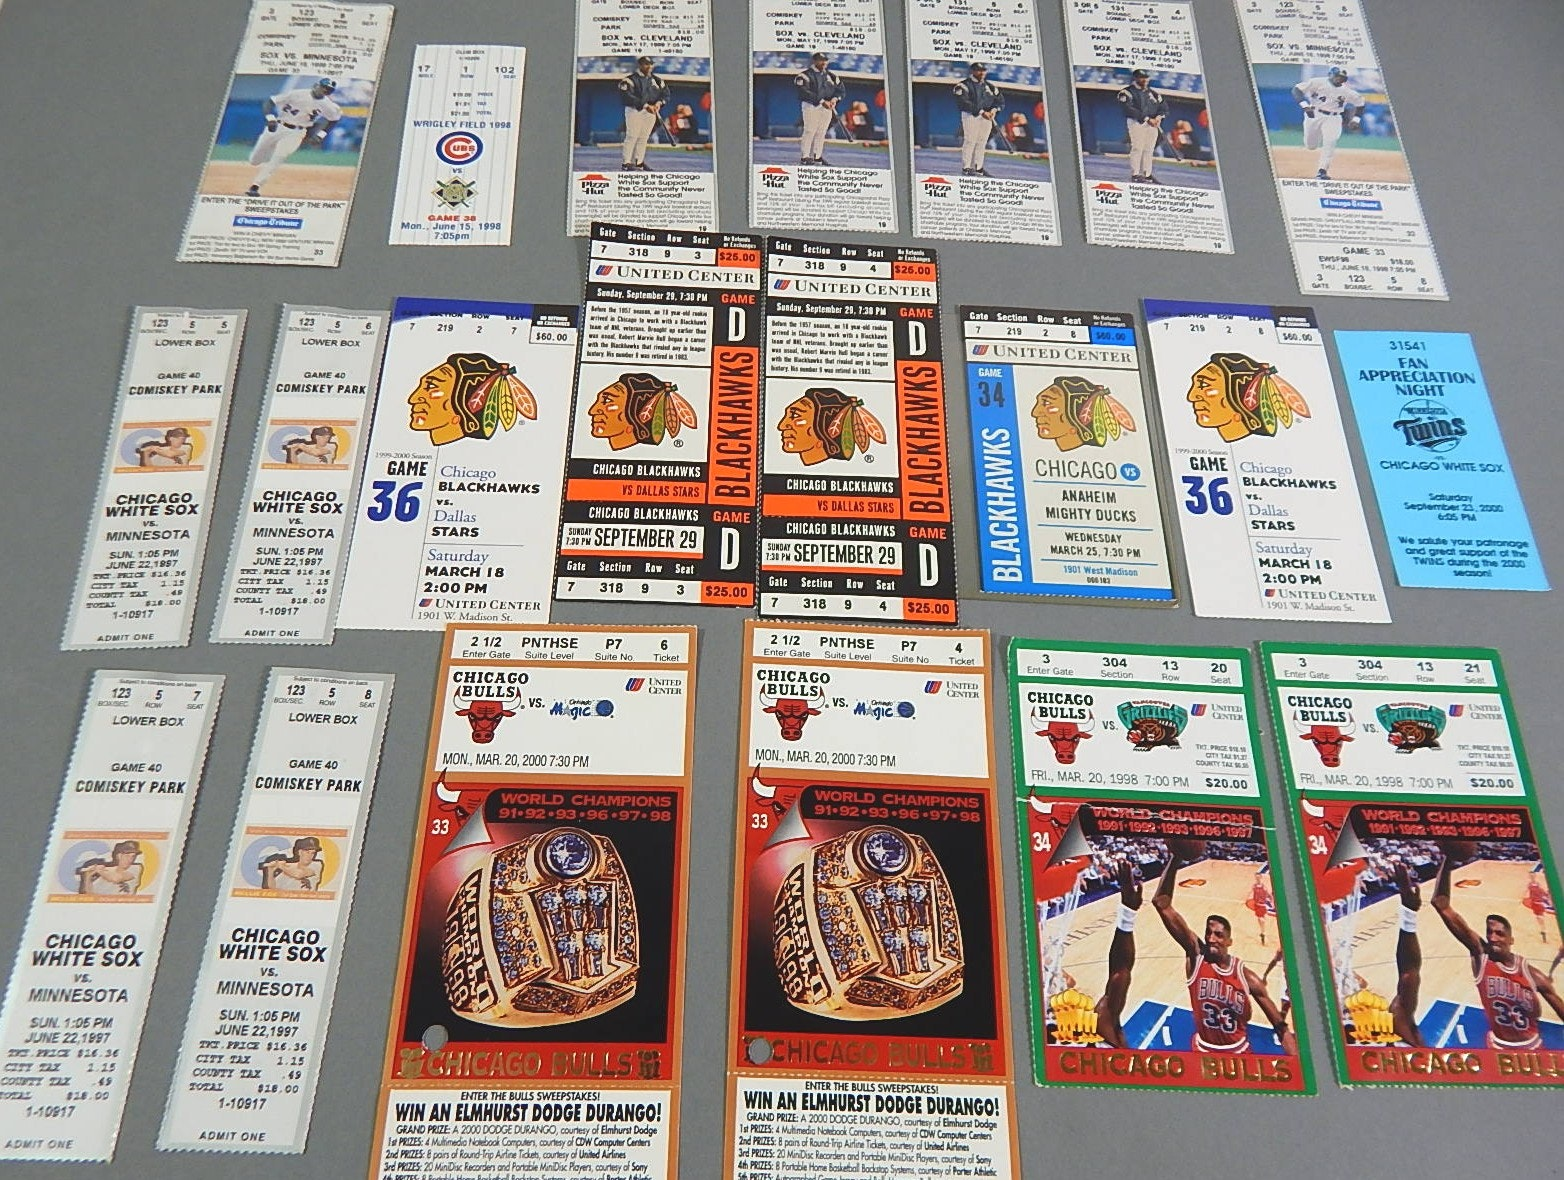 Chicago Bulls, Blackhawks, White Soxs, and Cubs Ticket Stub Collection